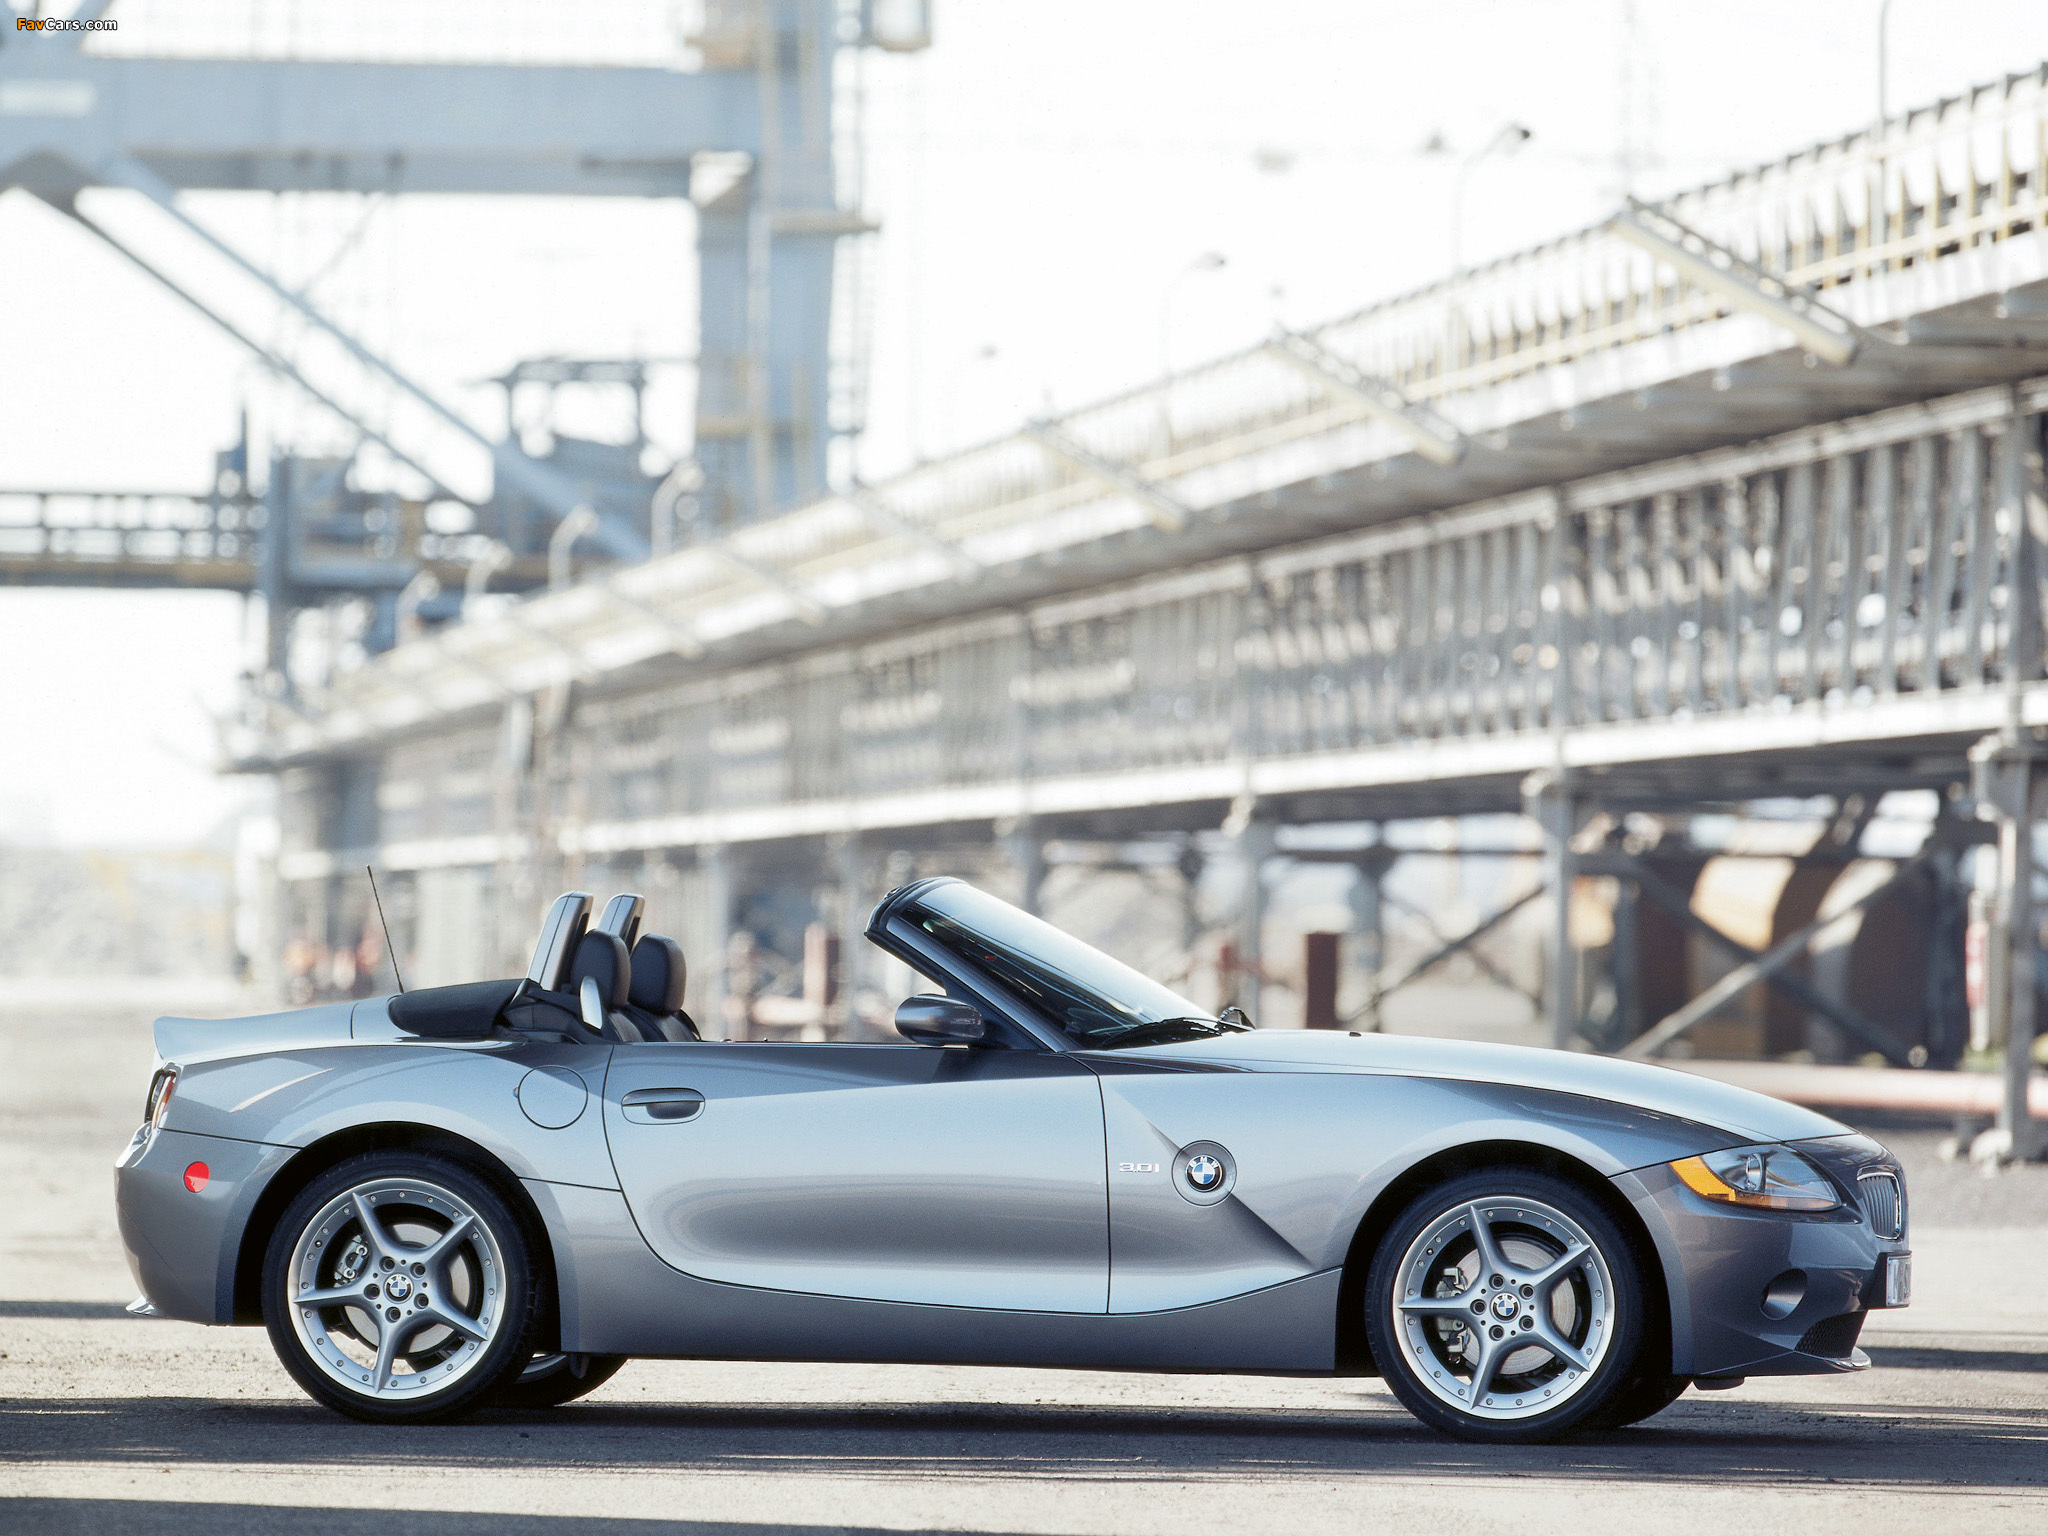 Bmw Z4 3 0i Roadster E85 2002 05 Pictures 2048x1536